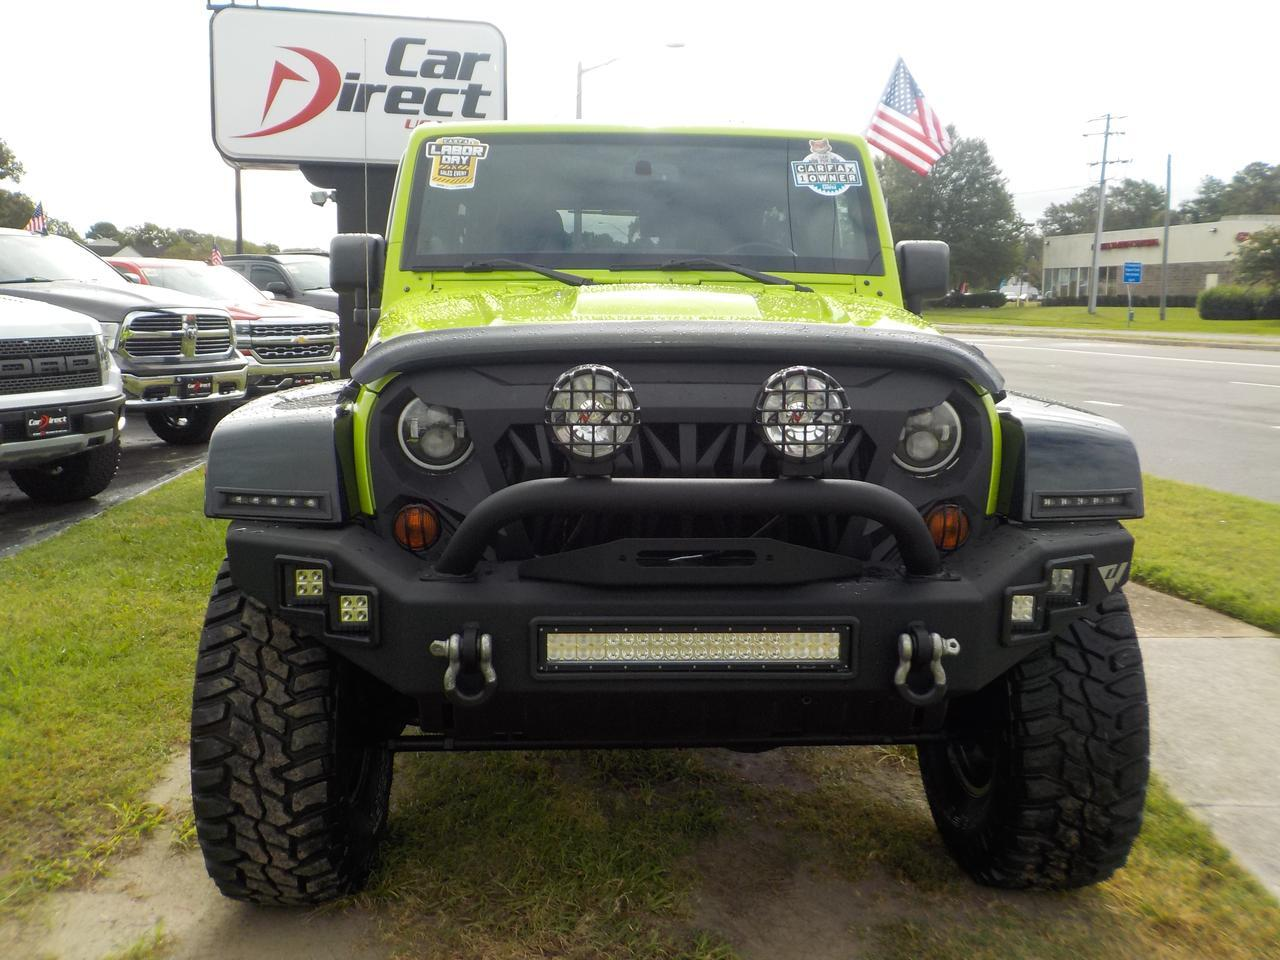 2013 JEEP WRANGLER UNLIMITED SAHARA MOAB 4X4, TOW PACKAGE, DVD SYSTEM, NAVIGATION, KEYLESS ENTRY, CRUISE CONTROL & USB! Virginia Beach VA